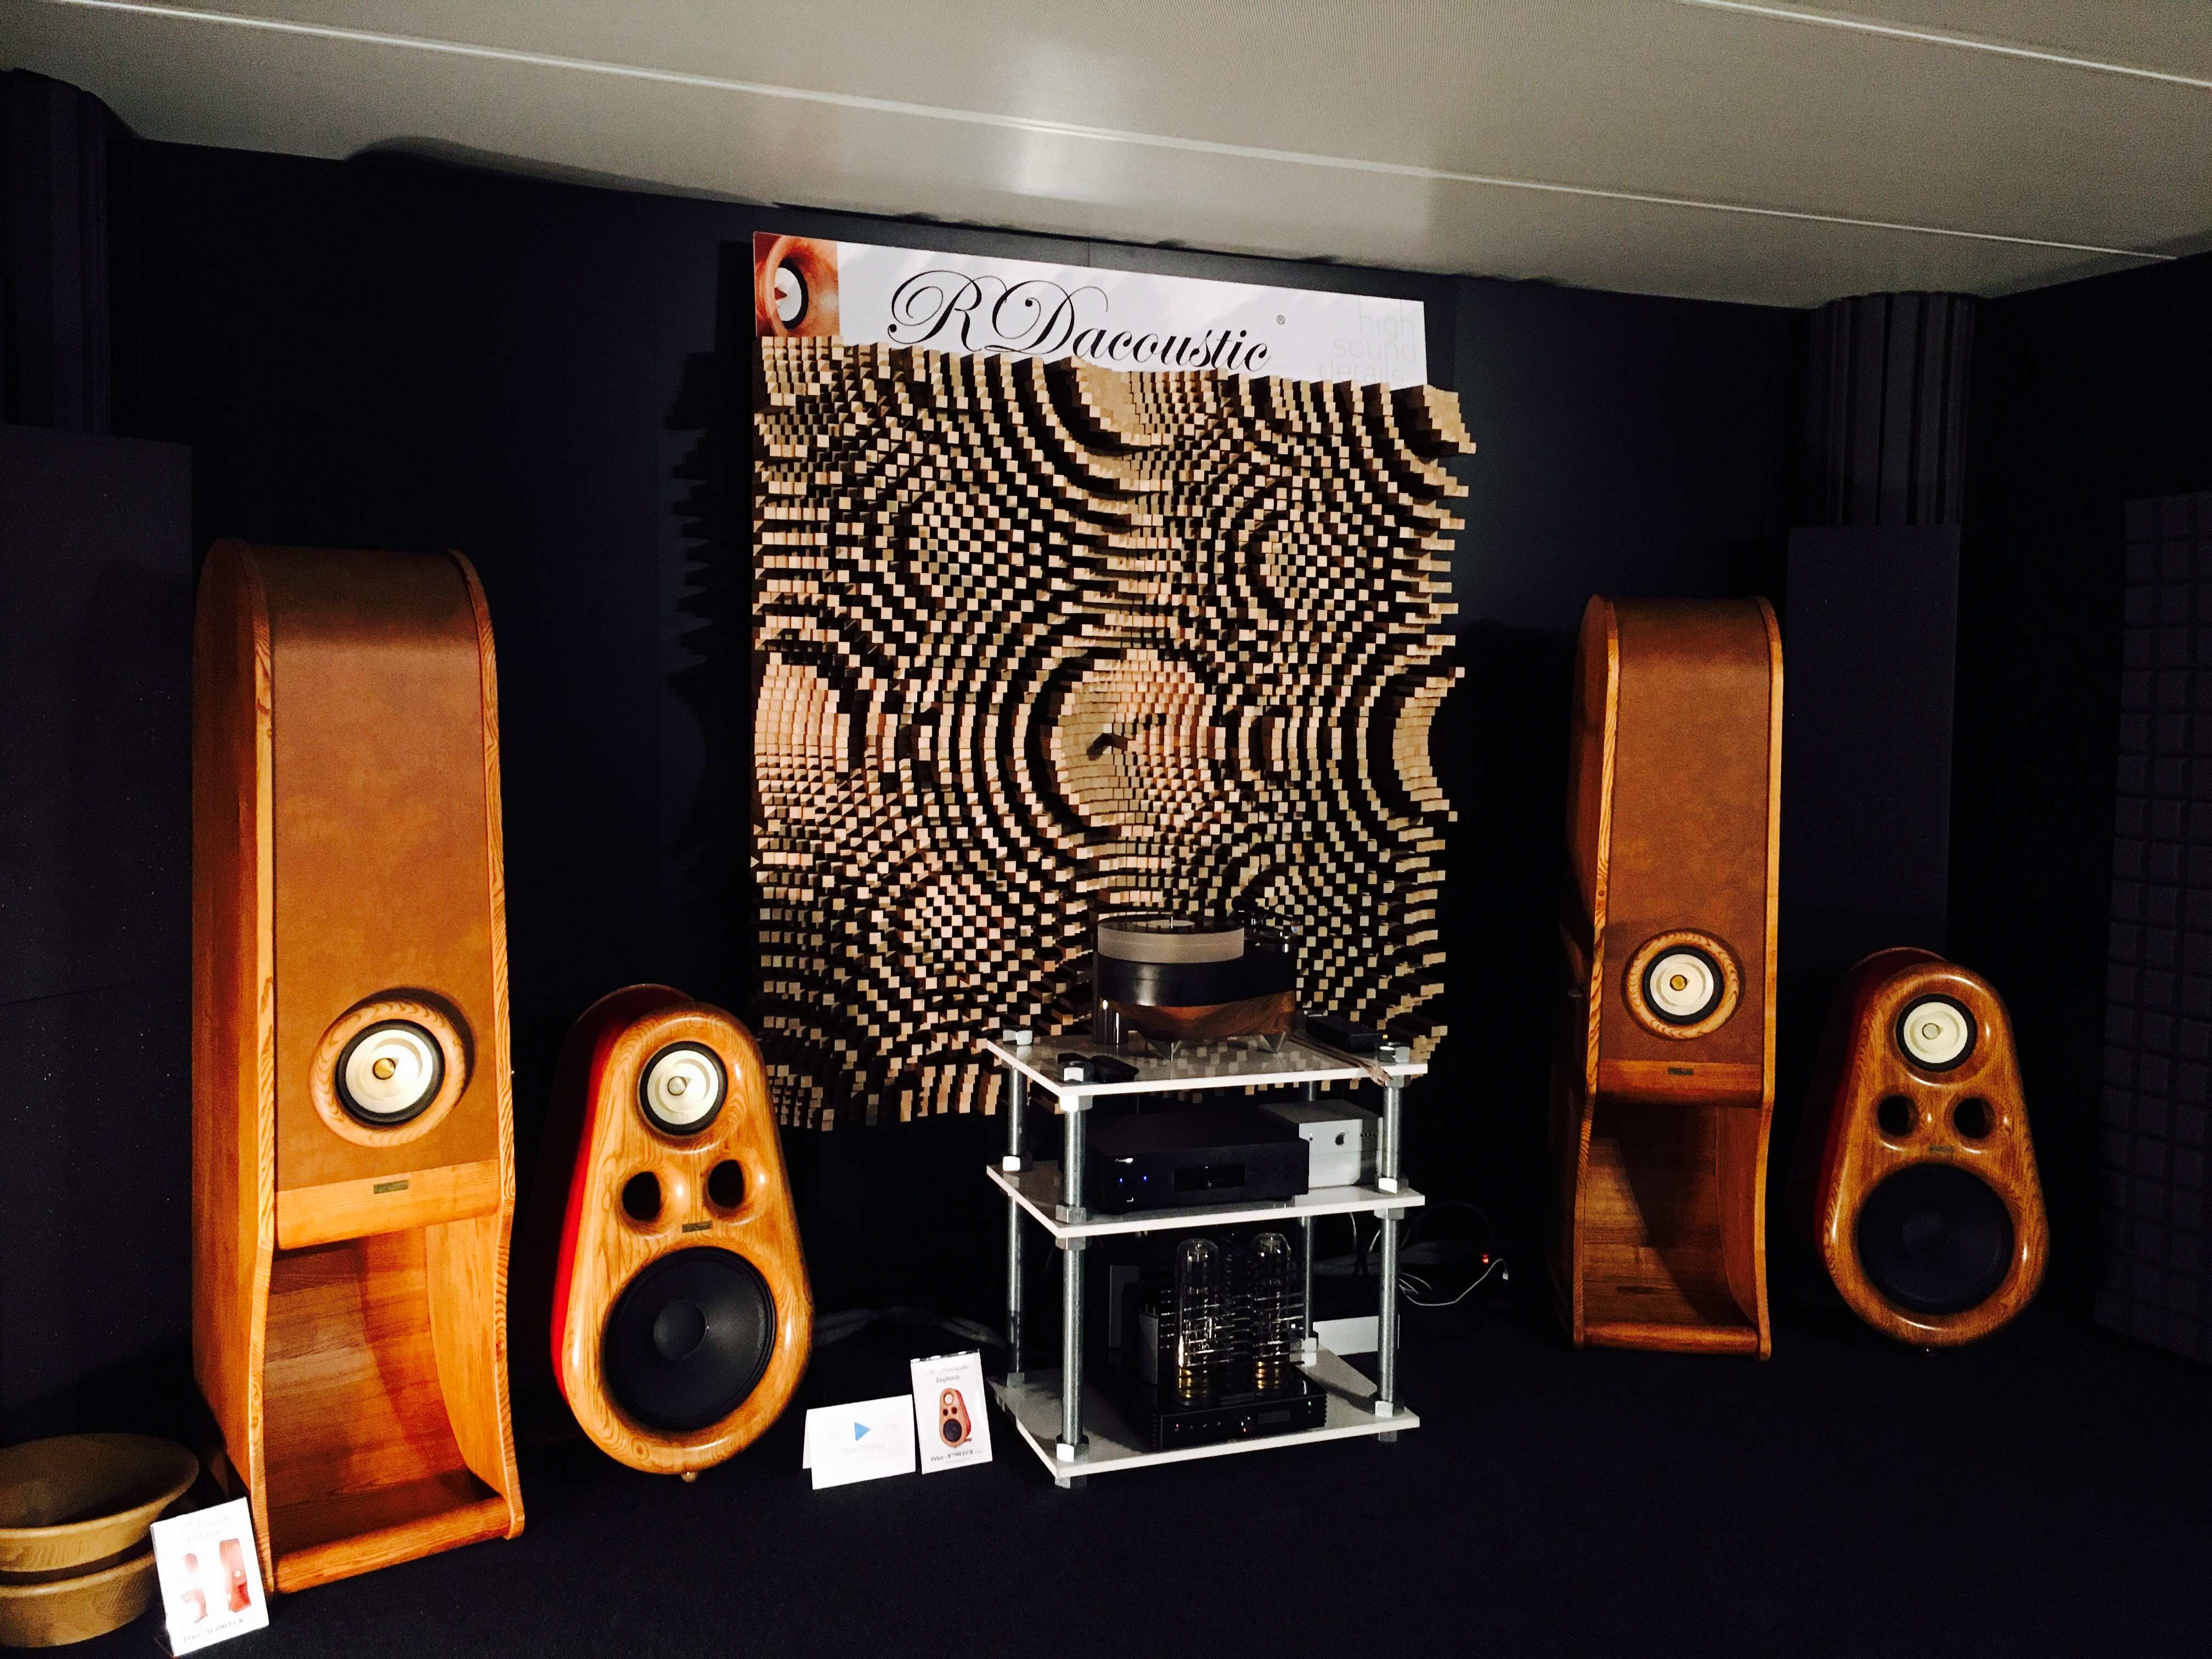 High End speakers Evolution and Euphoria. Pure HIFI stereo for audiophiles Home audio.